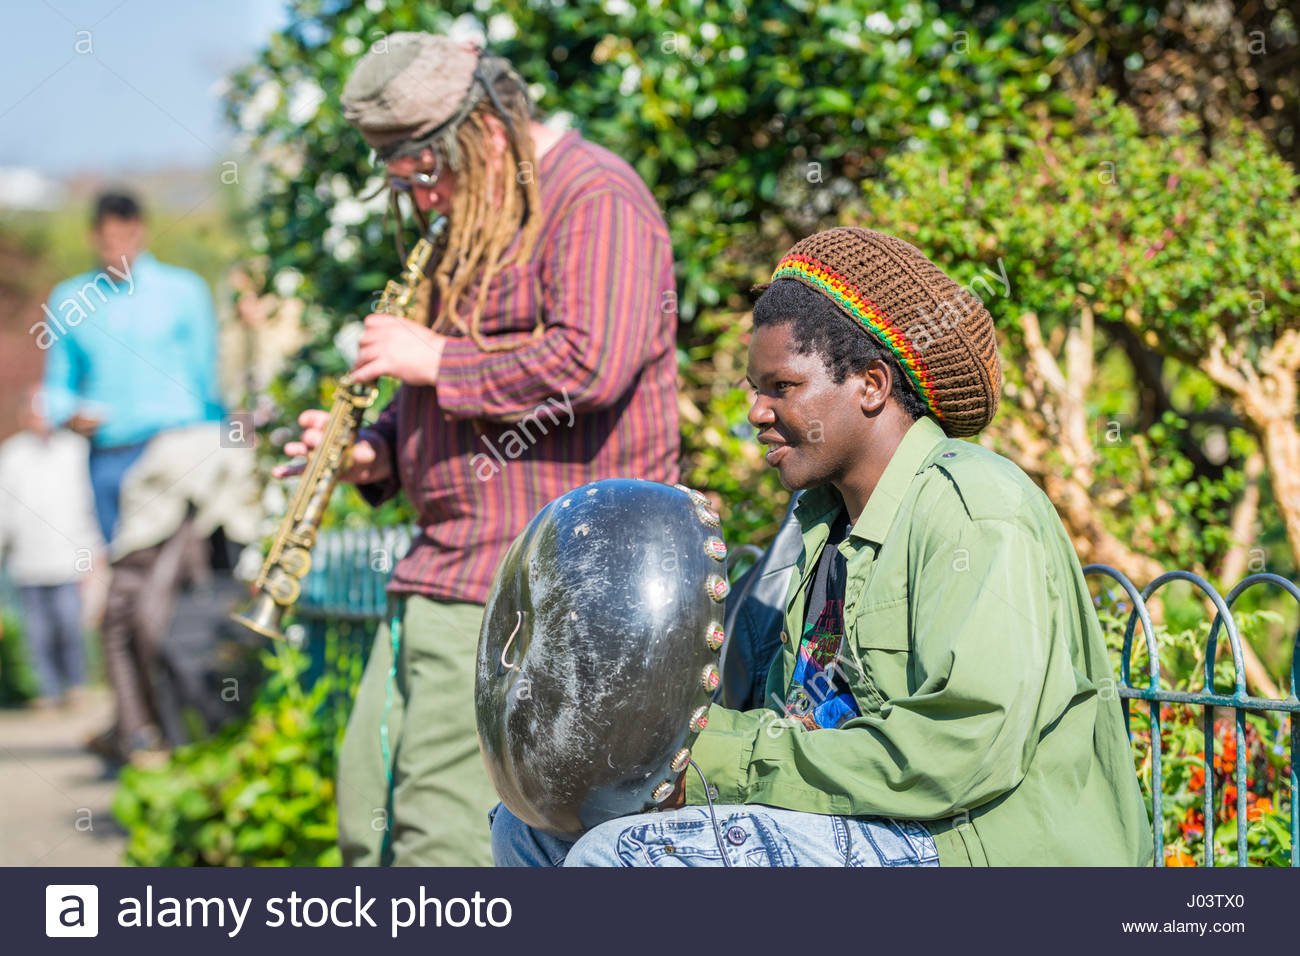 Pair of buskers playing instruments in a park in the UK. - Stock Image